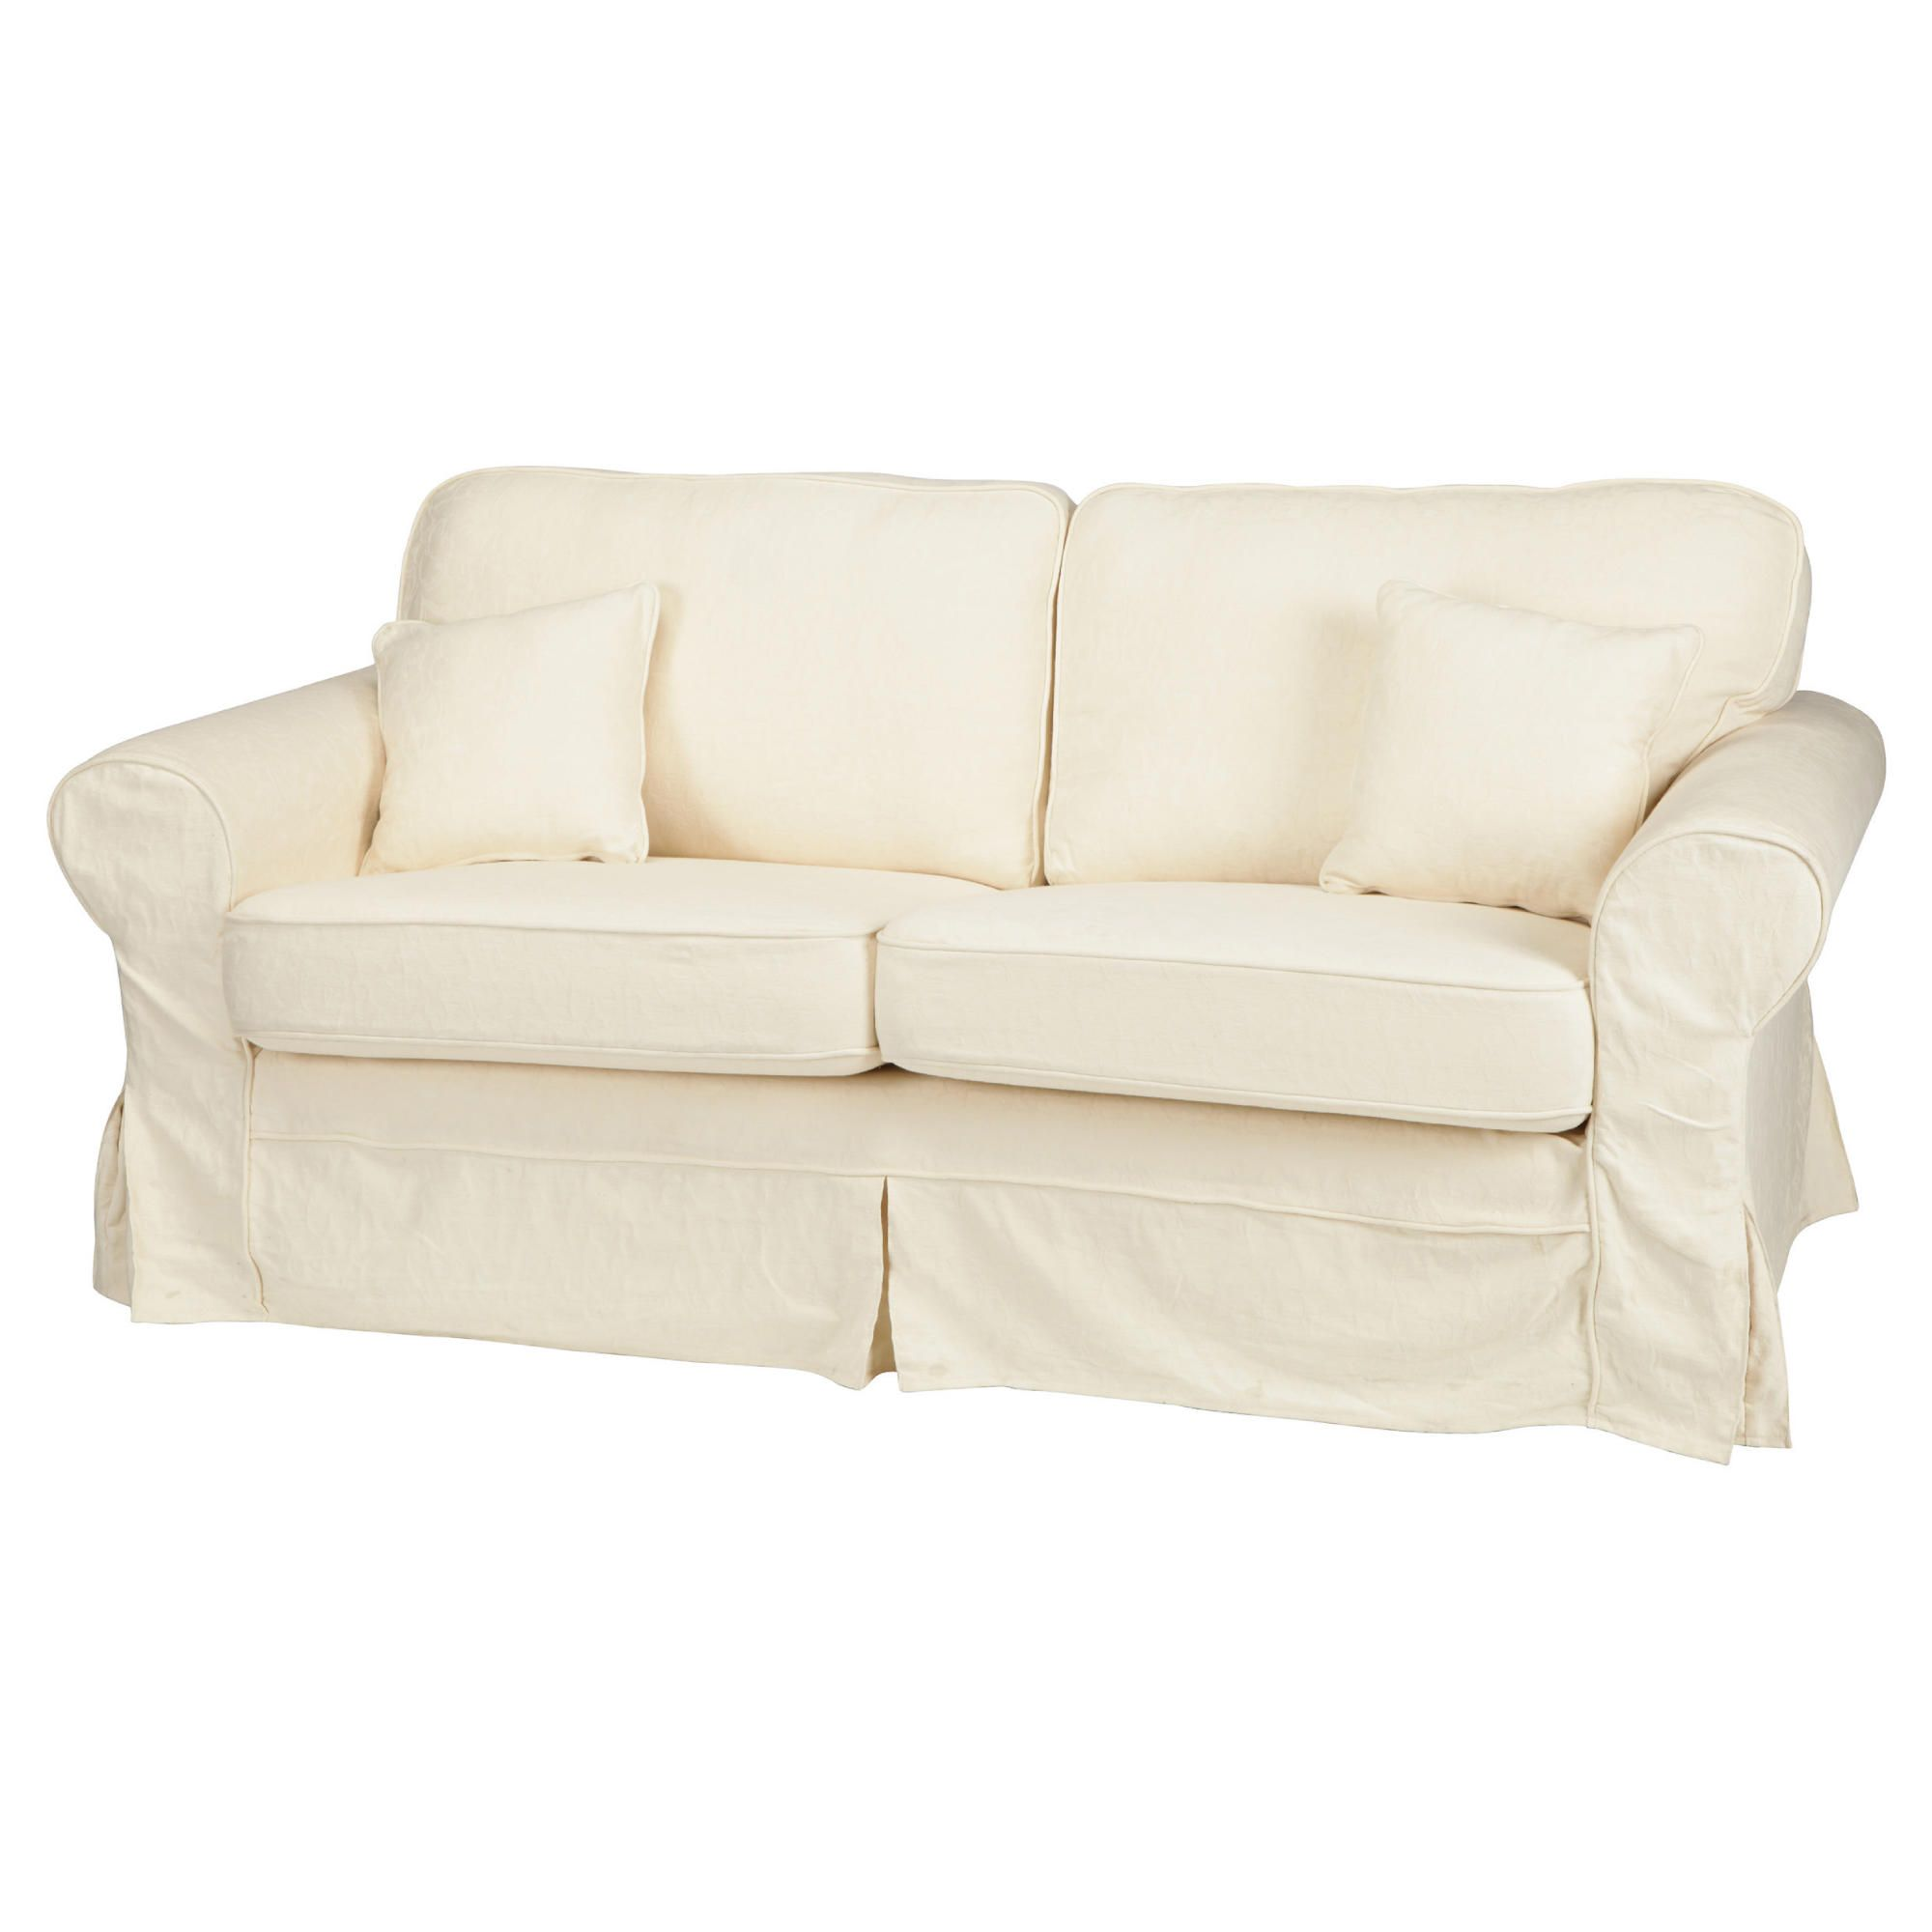 Sofas Loose Covers: LOUISA SMALL LOOSE COVER FABRIC SOFA CREAM